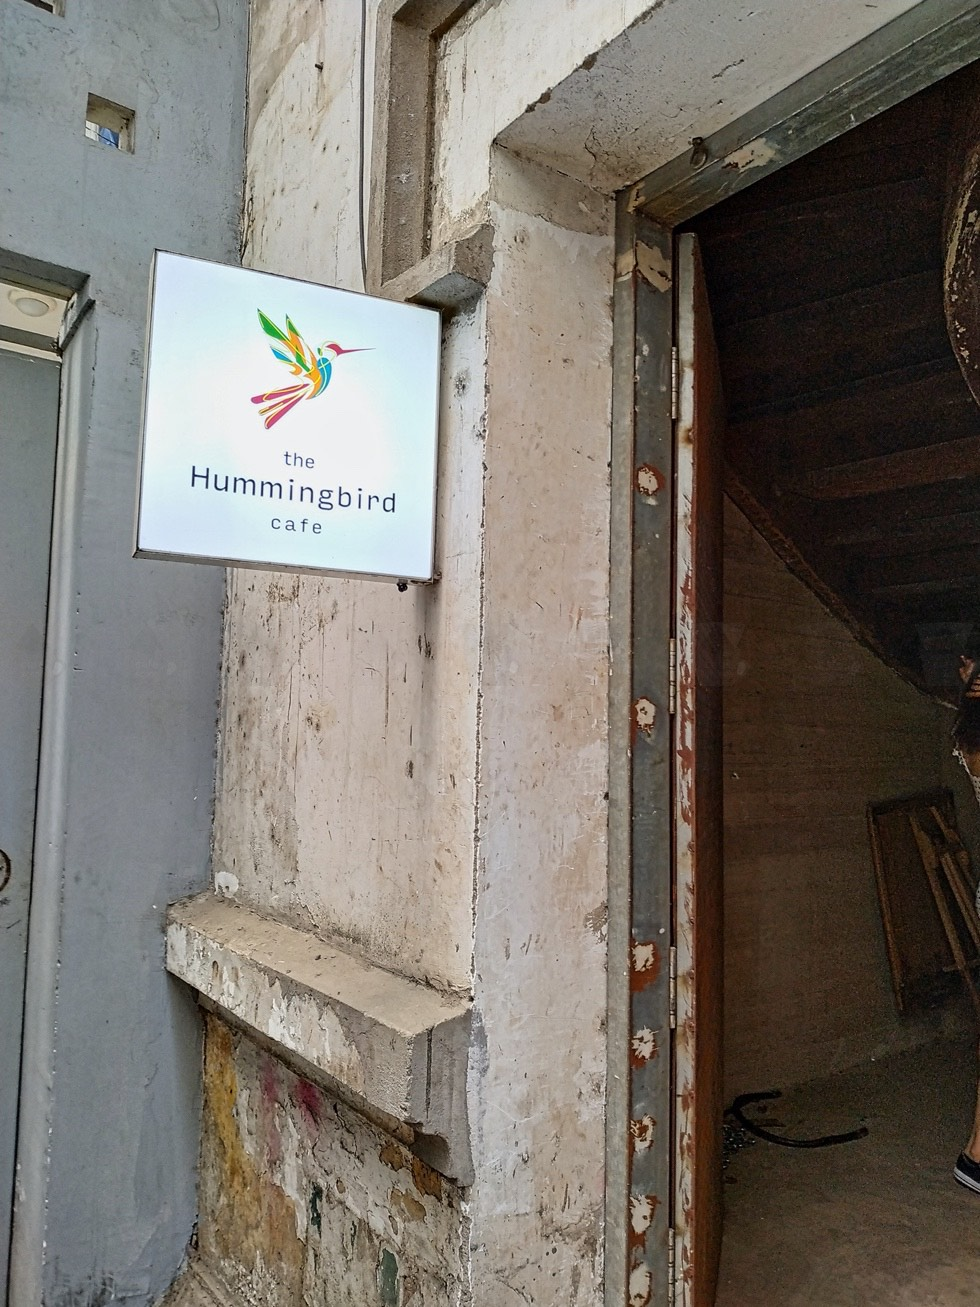 The Hummingbird Cafe Entrance